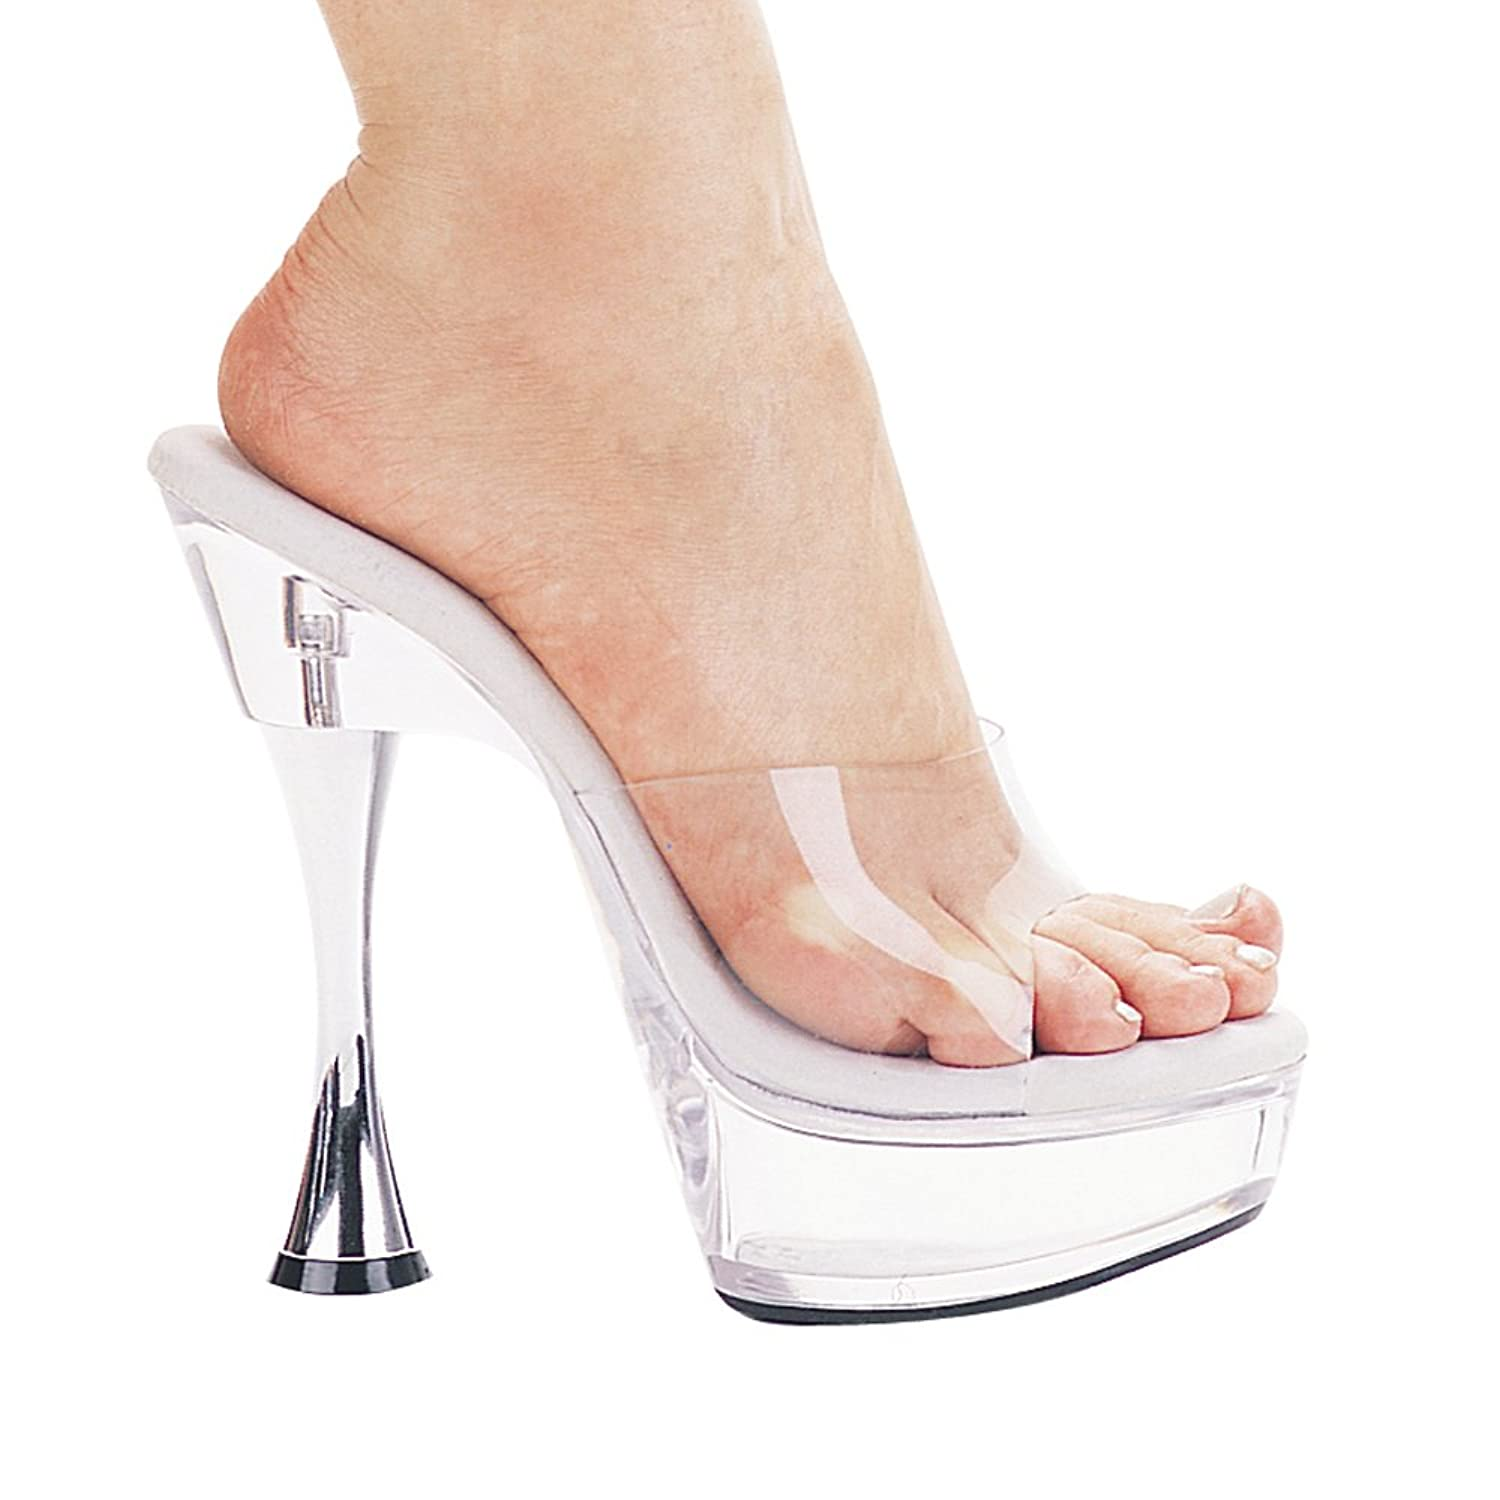 Amazon.com: 4 Inch Heel Clear Platform Stiletto Shoe: Shoes